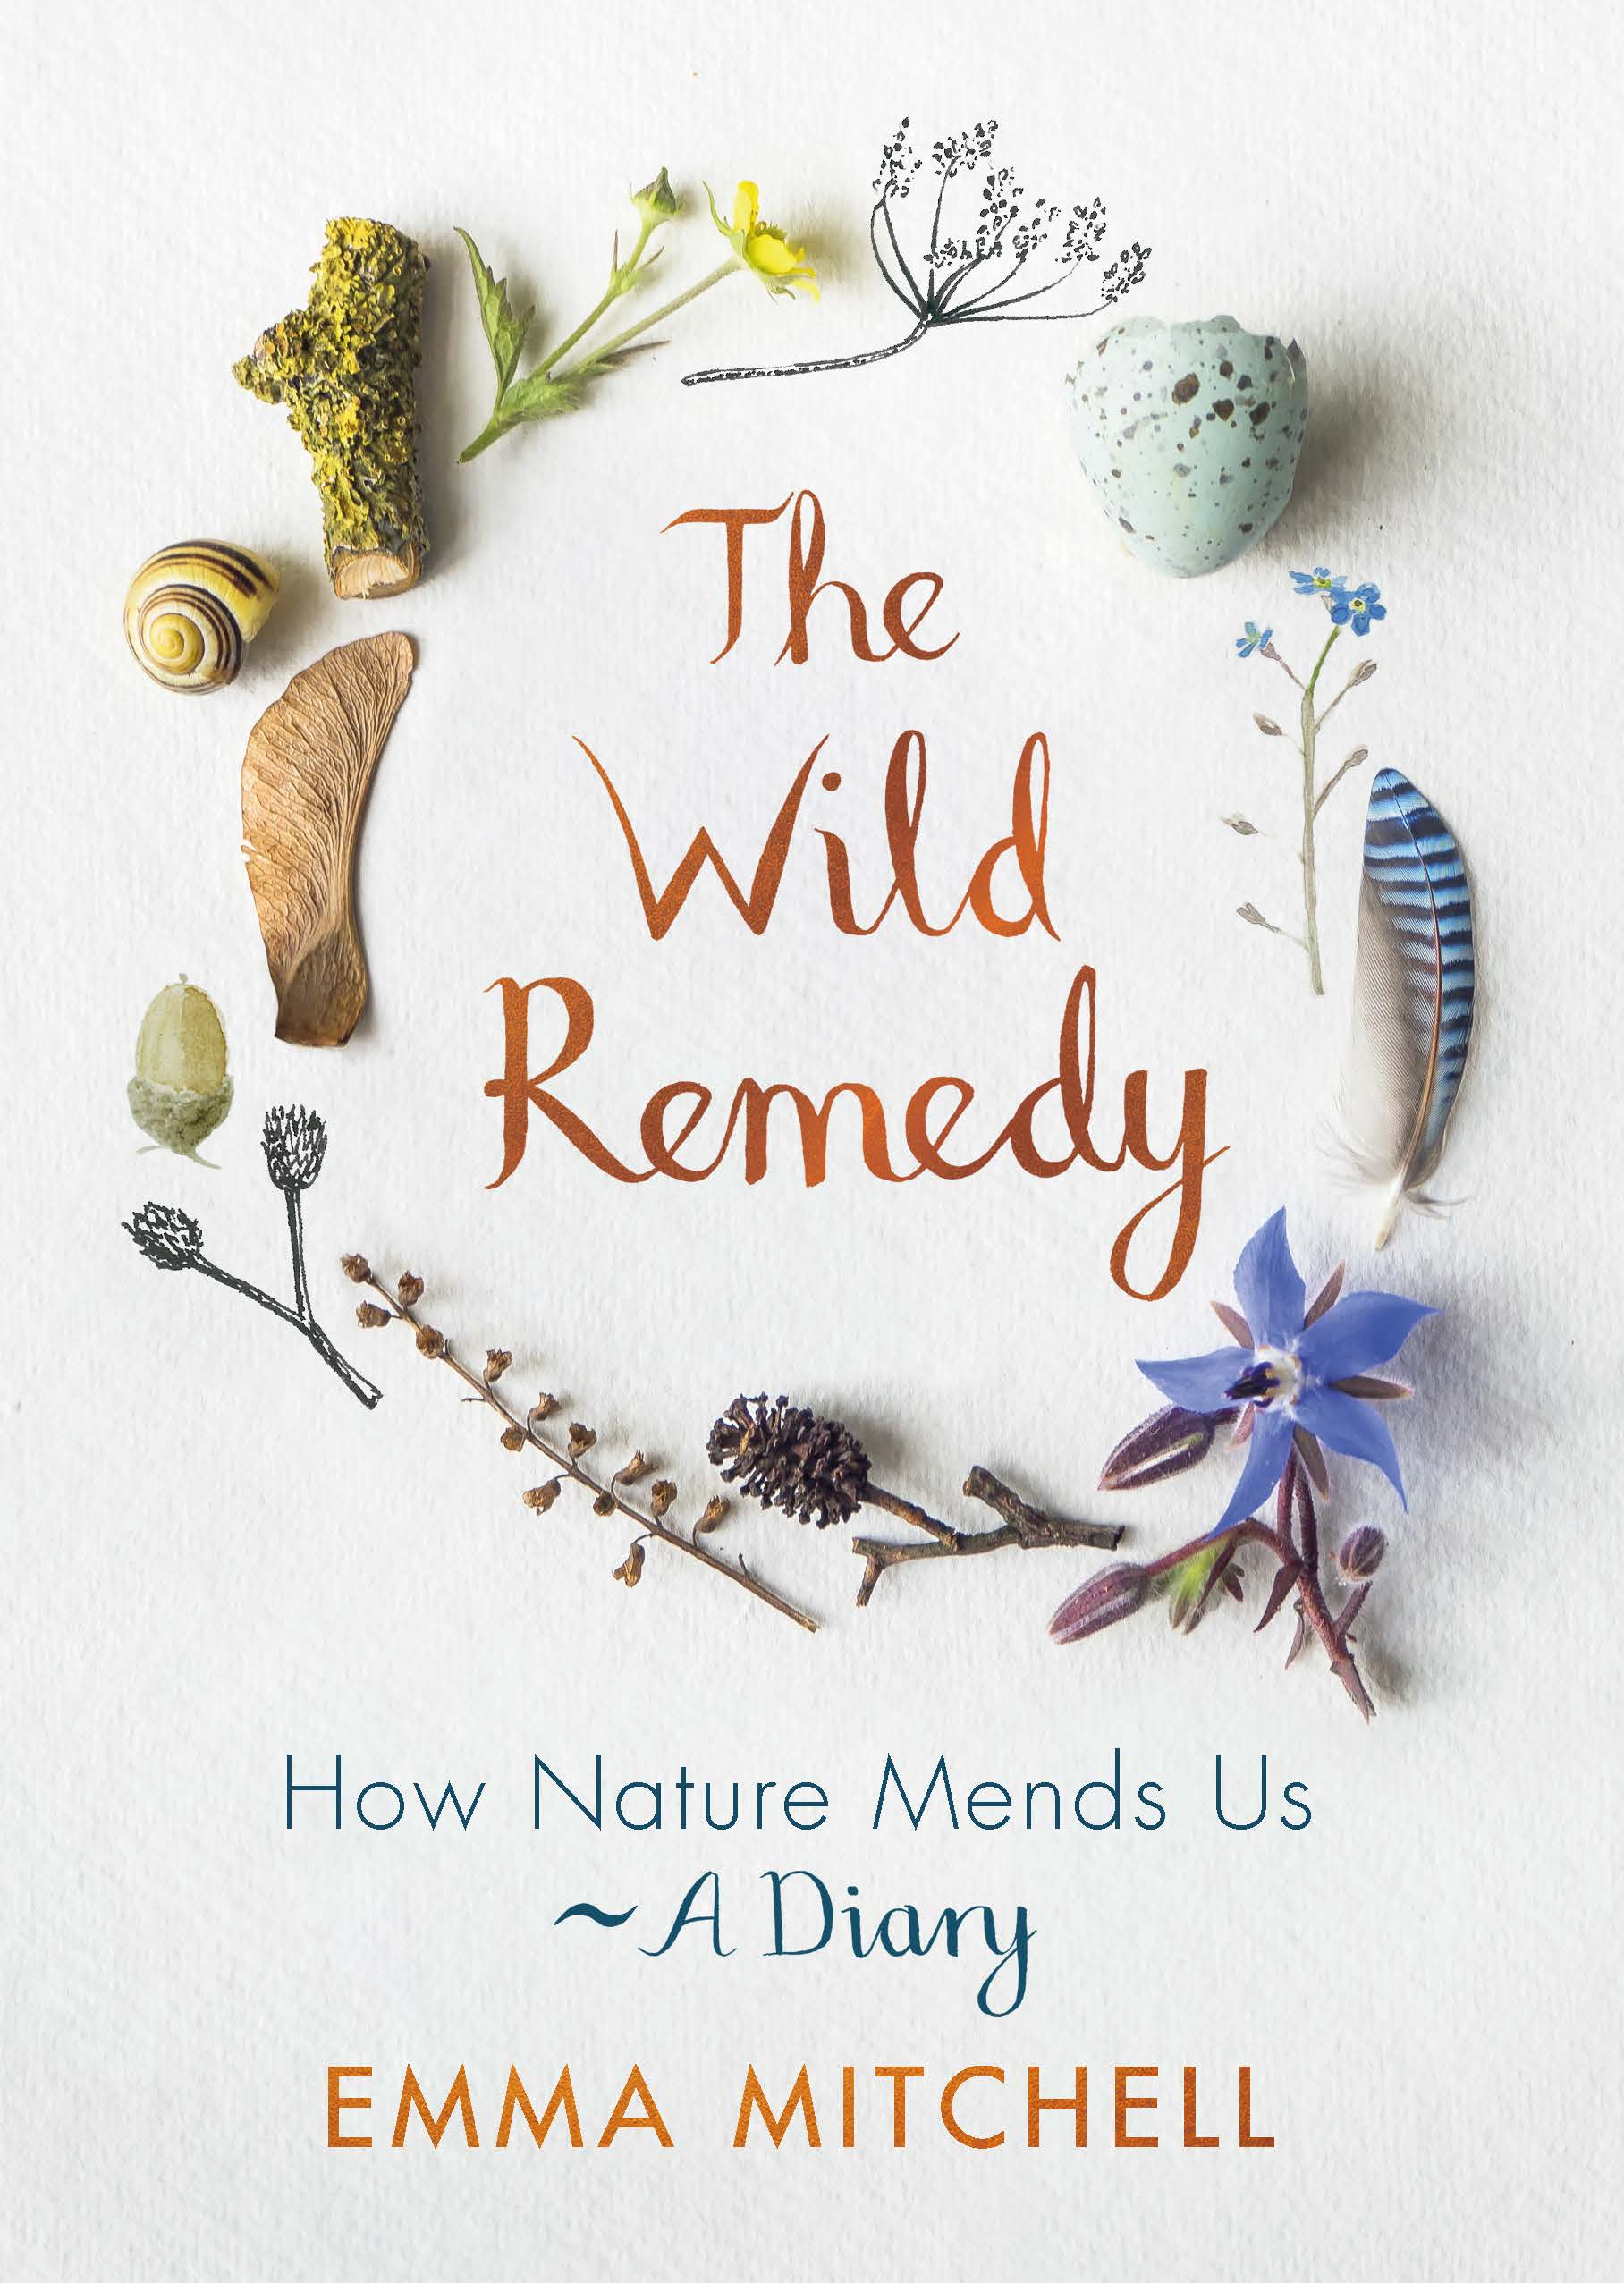 THE WILD REMEDY: How Nature Mends Us  Nature, 192 pages, Michael O'Mara, January 2019  Emma Mitchell has suffered with depression - or as she calls it, 'the grey slug' - for twenty-five years. In 2003, she moved from the city to the edge of the Cambridgeshire Fens and began to take walks in the countryside around her new home, photographing, collecting and drawing as she went. Each walk lifted her mood, proving to be as medicinal as any talking therapy or pharmaceutical.  In Emma's hand-illustrated diary, she takes us with her as she follows the paths and trails around her cottage and further afield, sharing her nature finds and tracking the lives of local flora and fauna over the course of a year. Reflecting on how these encounters impact her mood, Emma's moving and candid account of her own struggles is a powerful testament to how reconnecting with nature may offer some answers to today's mental health epidemic. While charting her own seasonal highs and lows, she also explains the science behind such changes, calling on new research into such areas as forest bathing and the ways in which our bodies and minds respond to plants and wildlife when we venture outdoors.  Written with Emma's characteristic wit and frankness, and filled with her beautiful drawings, paintings and photography, this is a truly unique book for anyone who has ever felt drawn to nature and wondered about its influence over us.